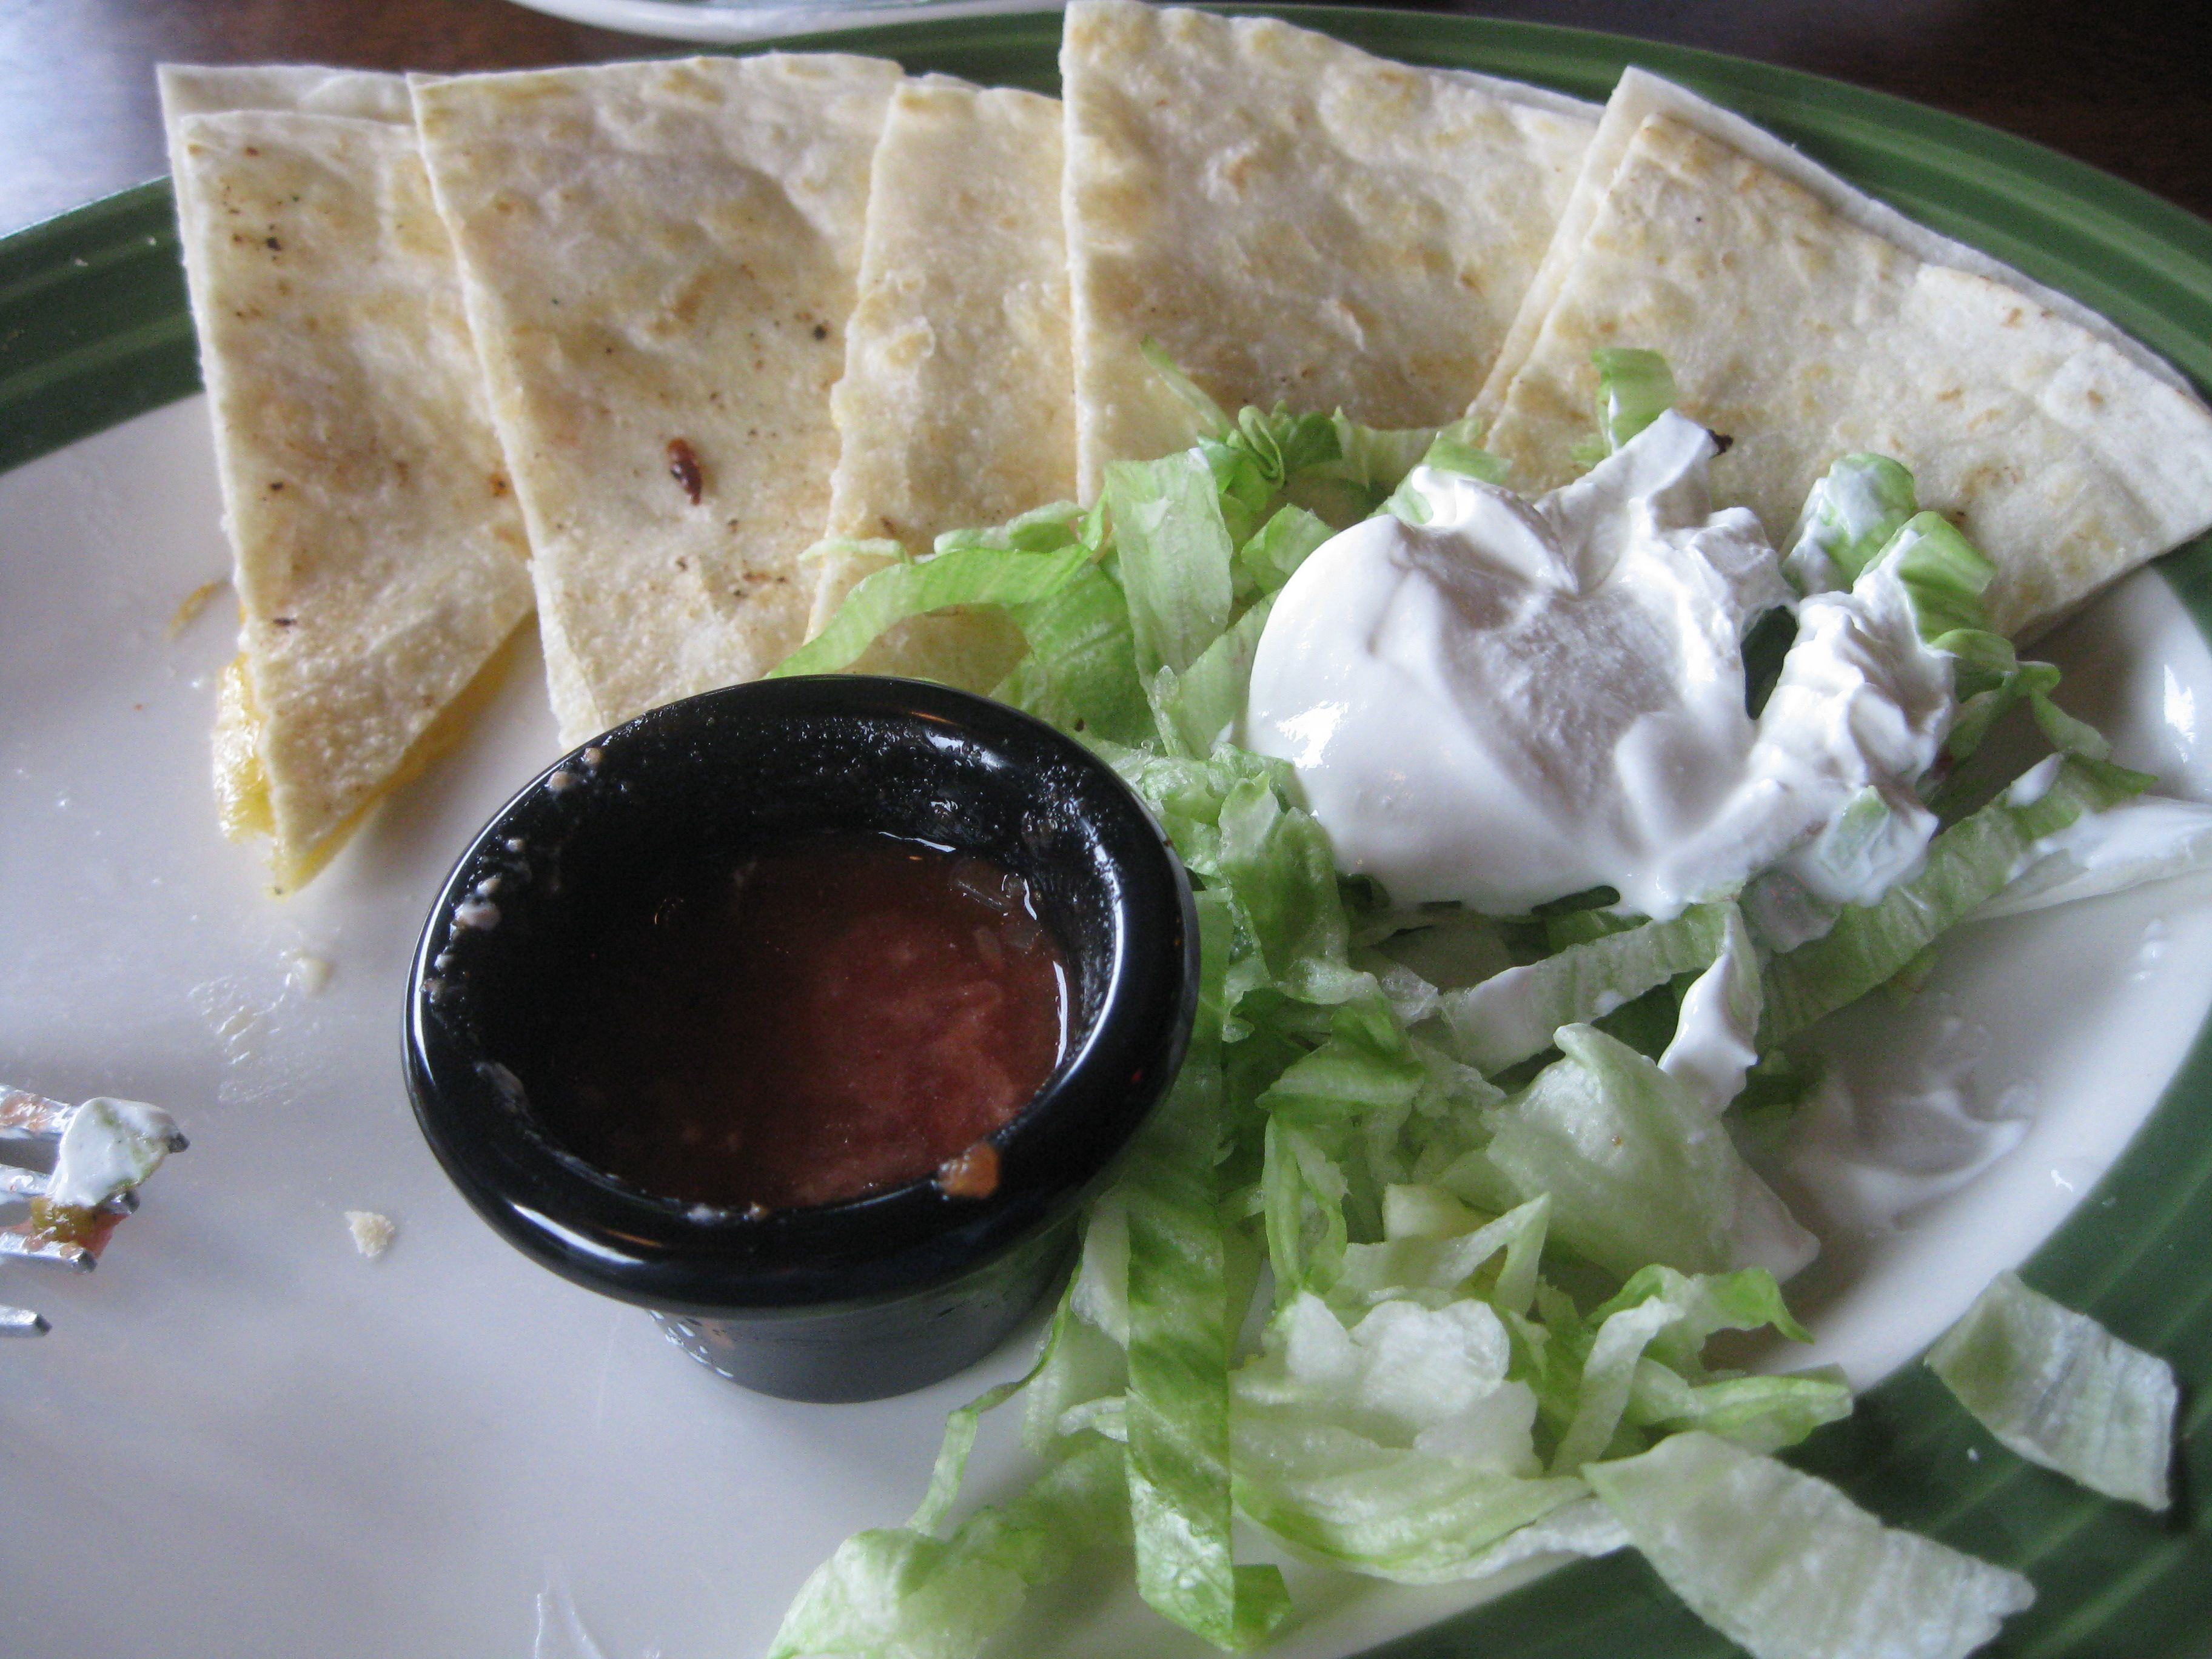 #Applebees #chicken #quesadilla - www.DrewryNewsNetwork.com/forum/reviews